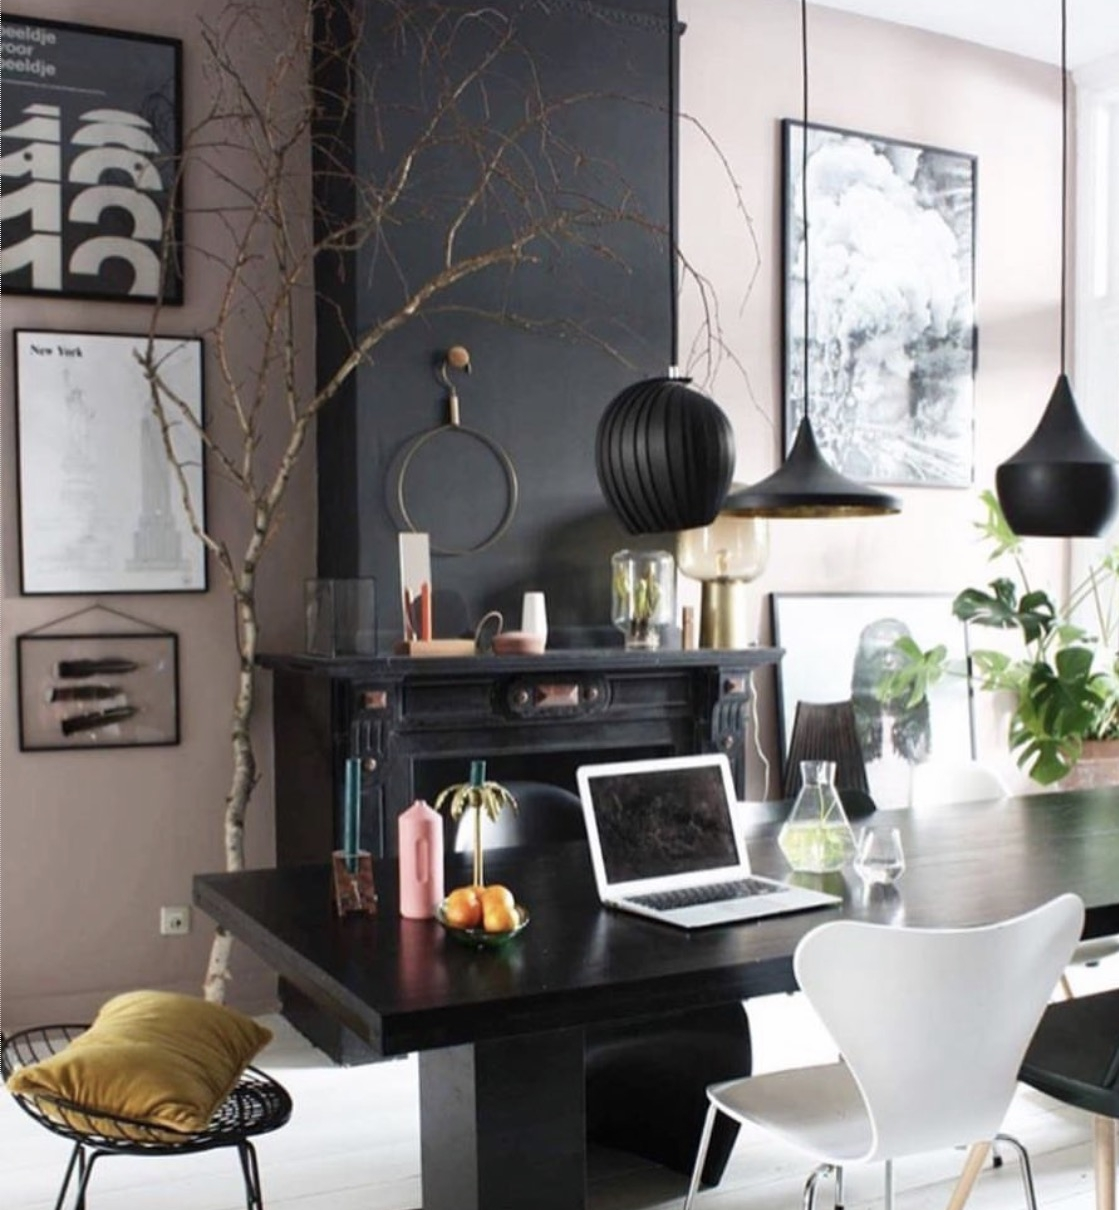 Theobert Pot  has combined pink walls with dark grey to great effect and the natural textures that he has used only serve to perfect the space.